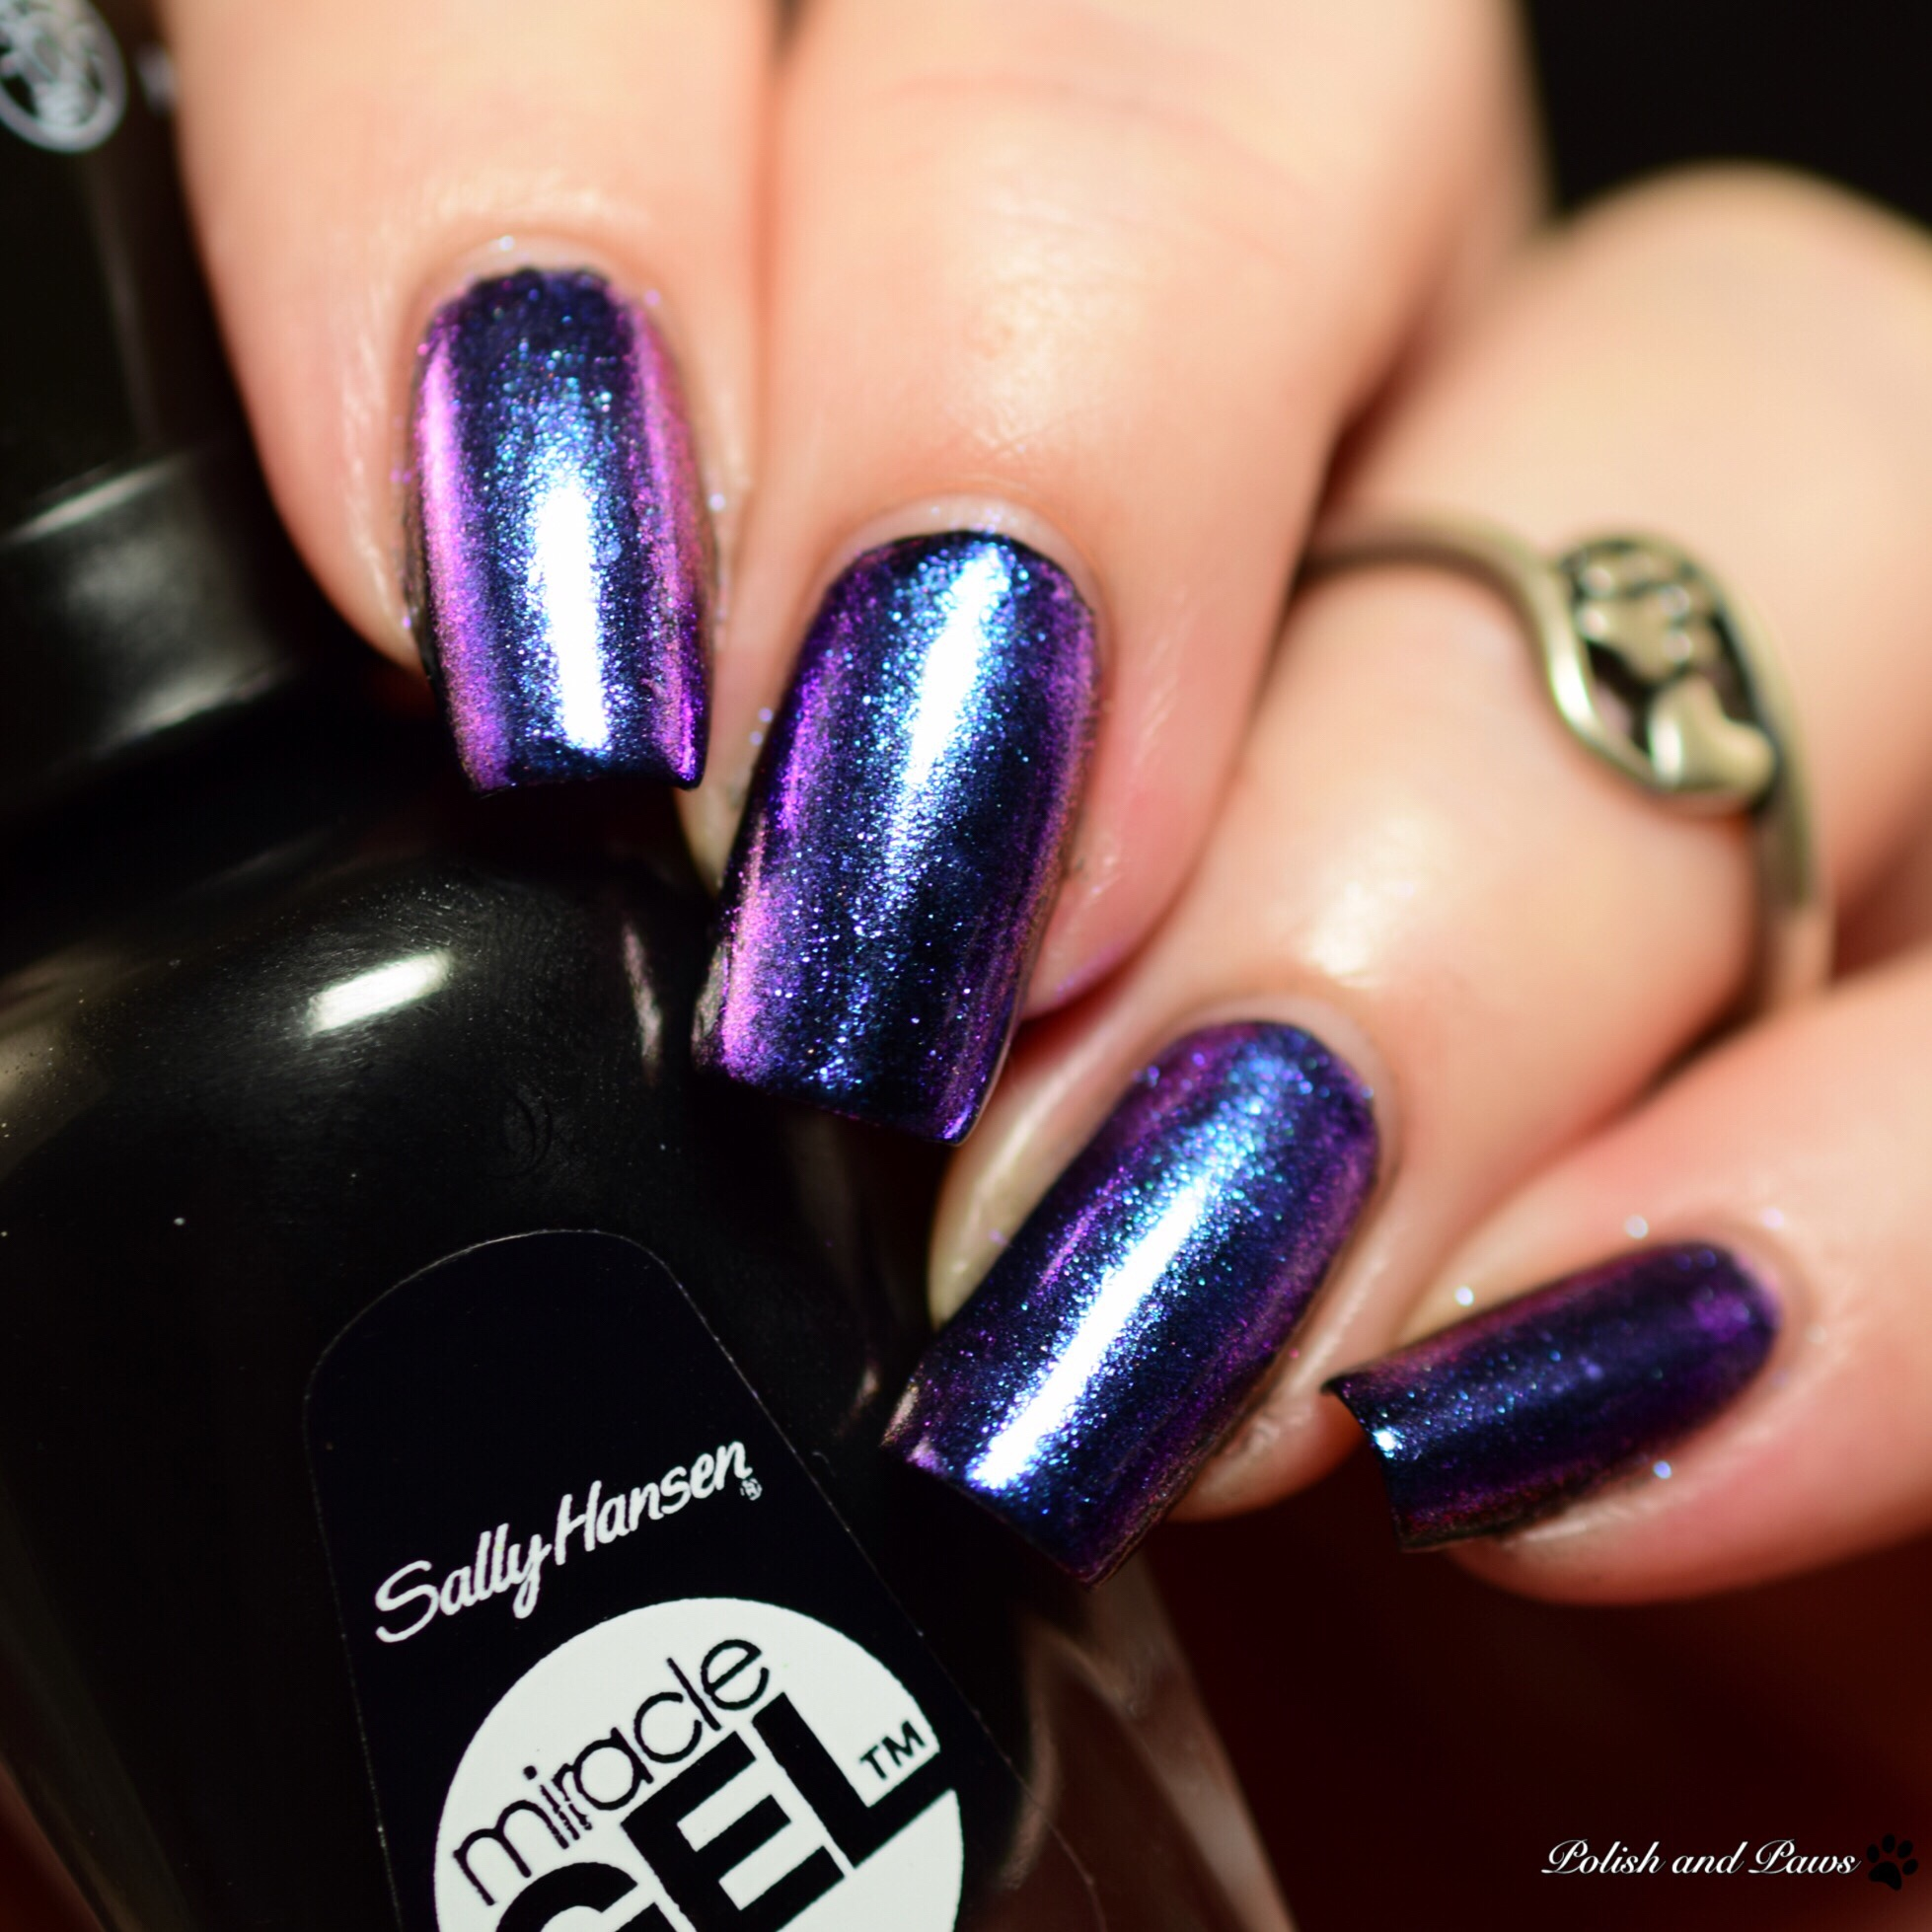 Sally Hansen Chrome Kit Peacock